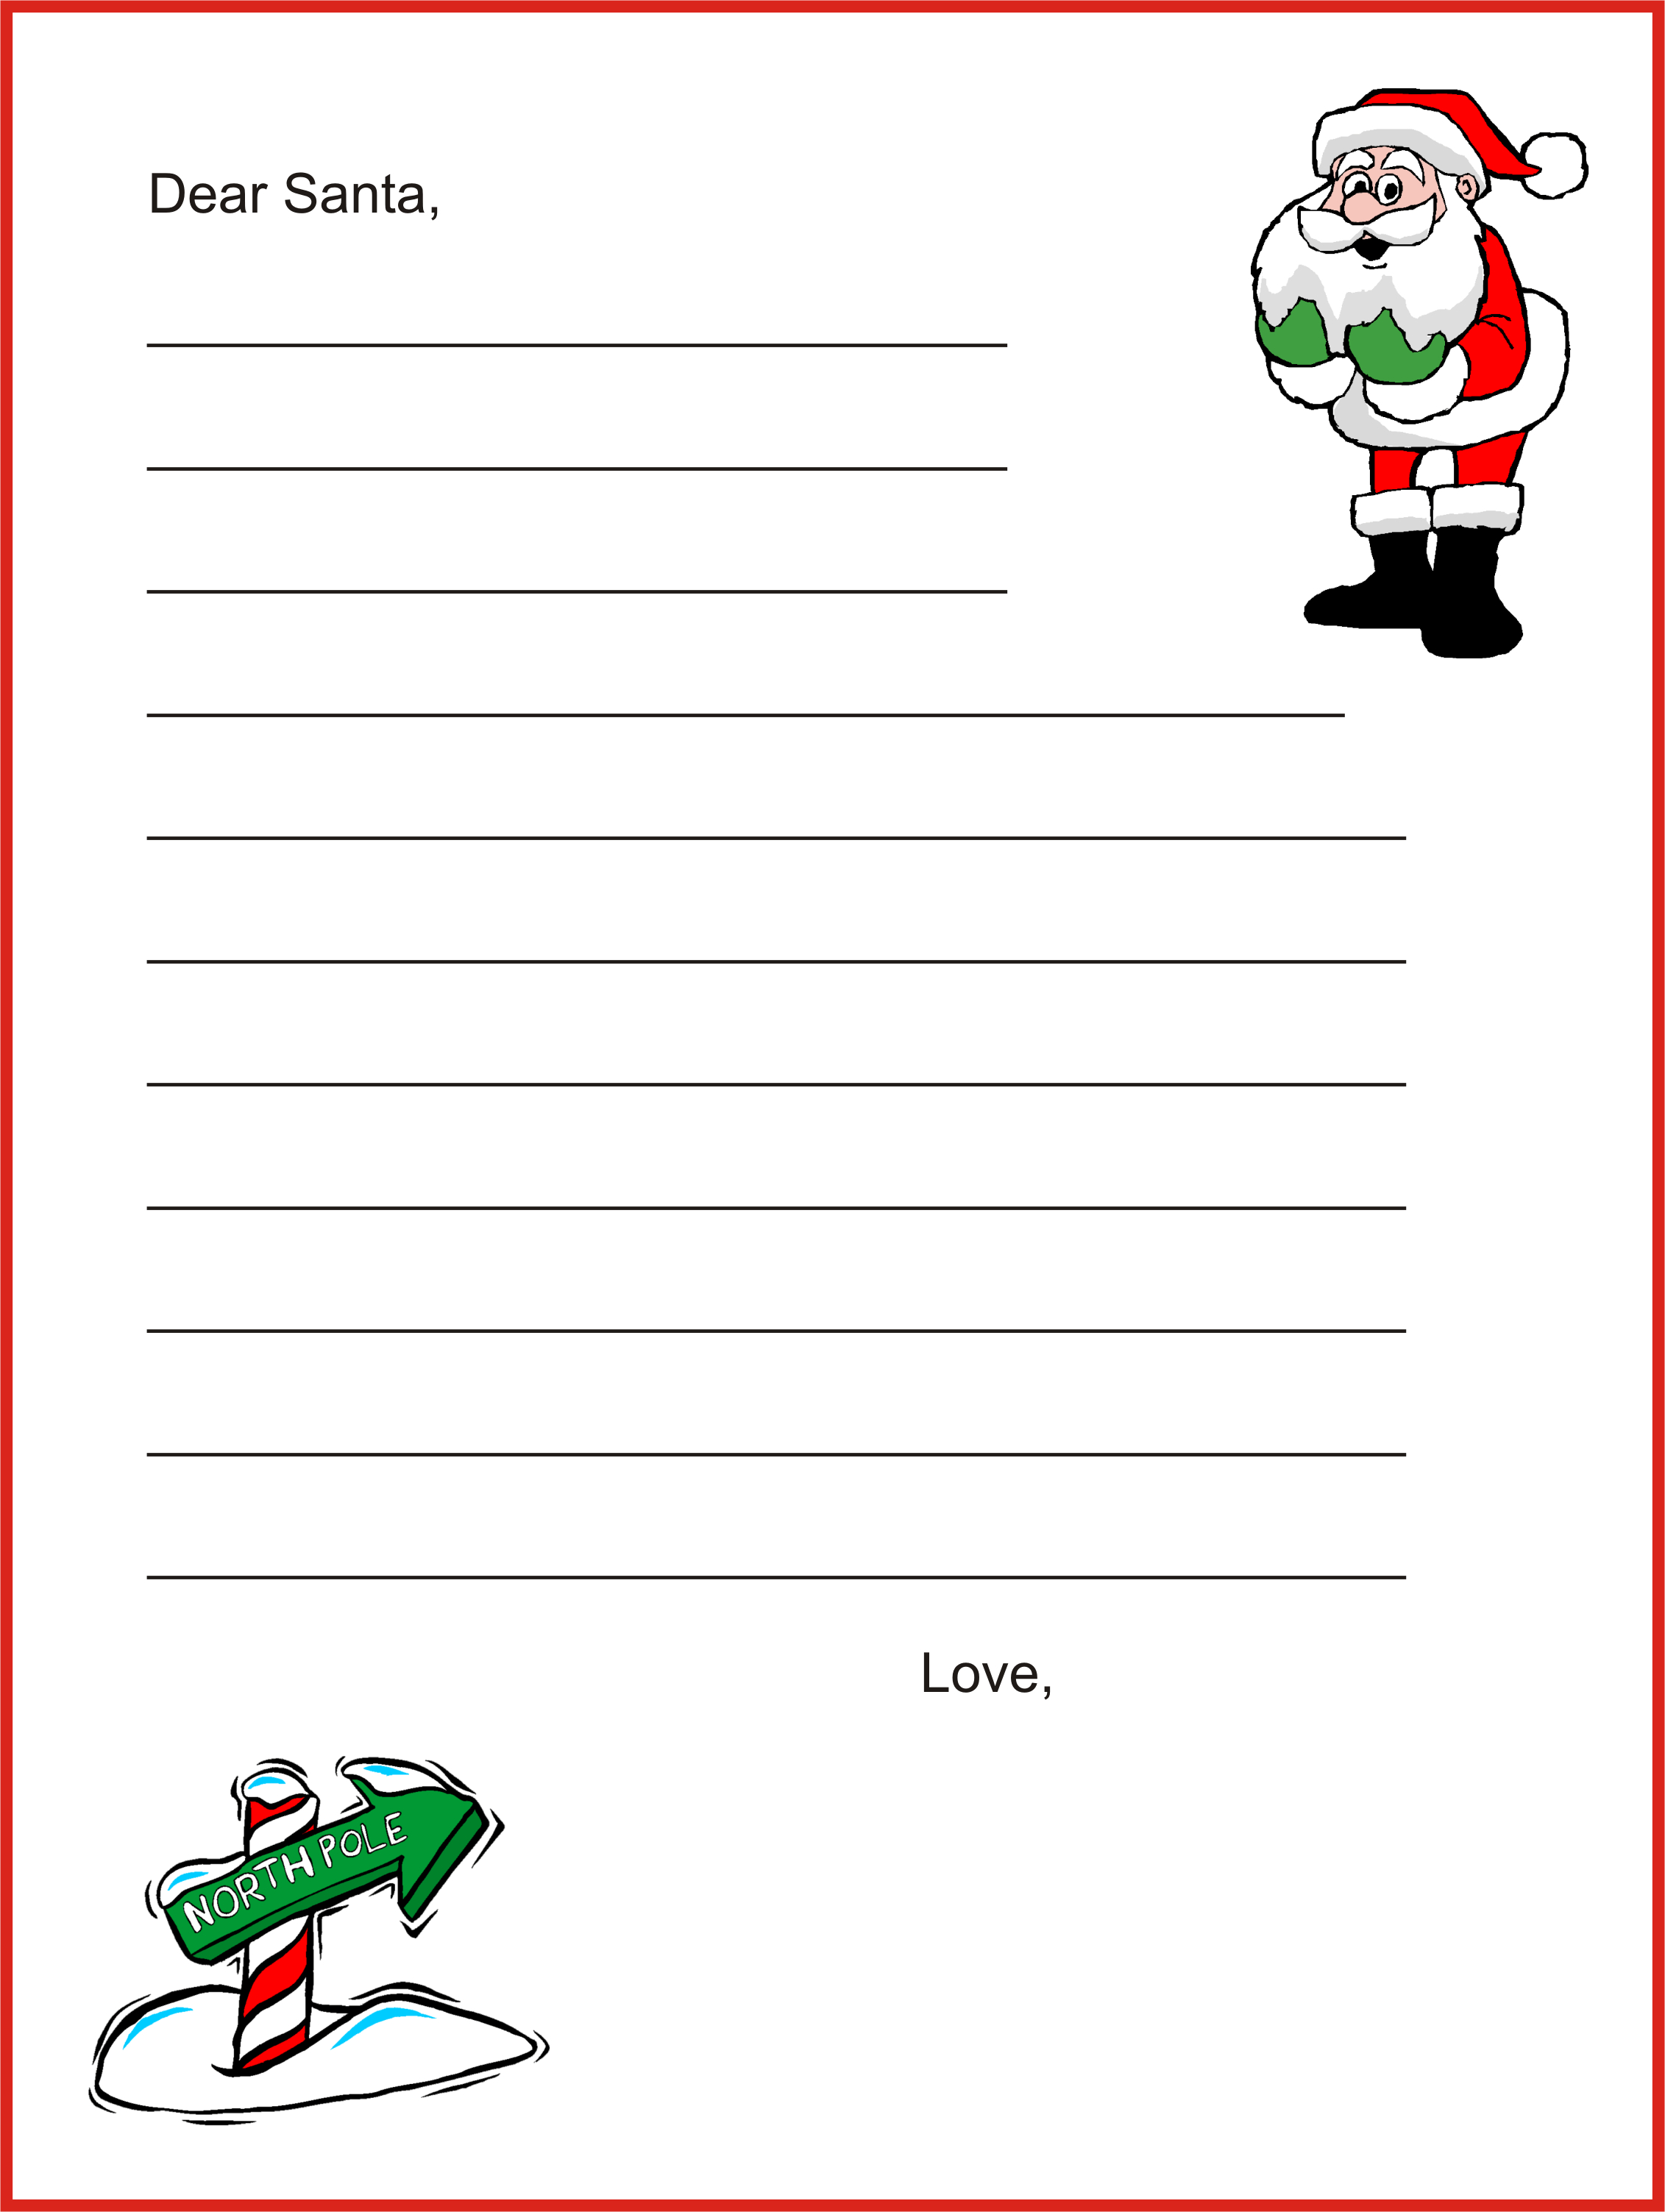 ... address a business or professional letter dear santa letter template